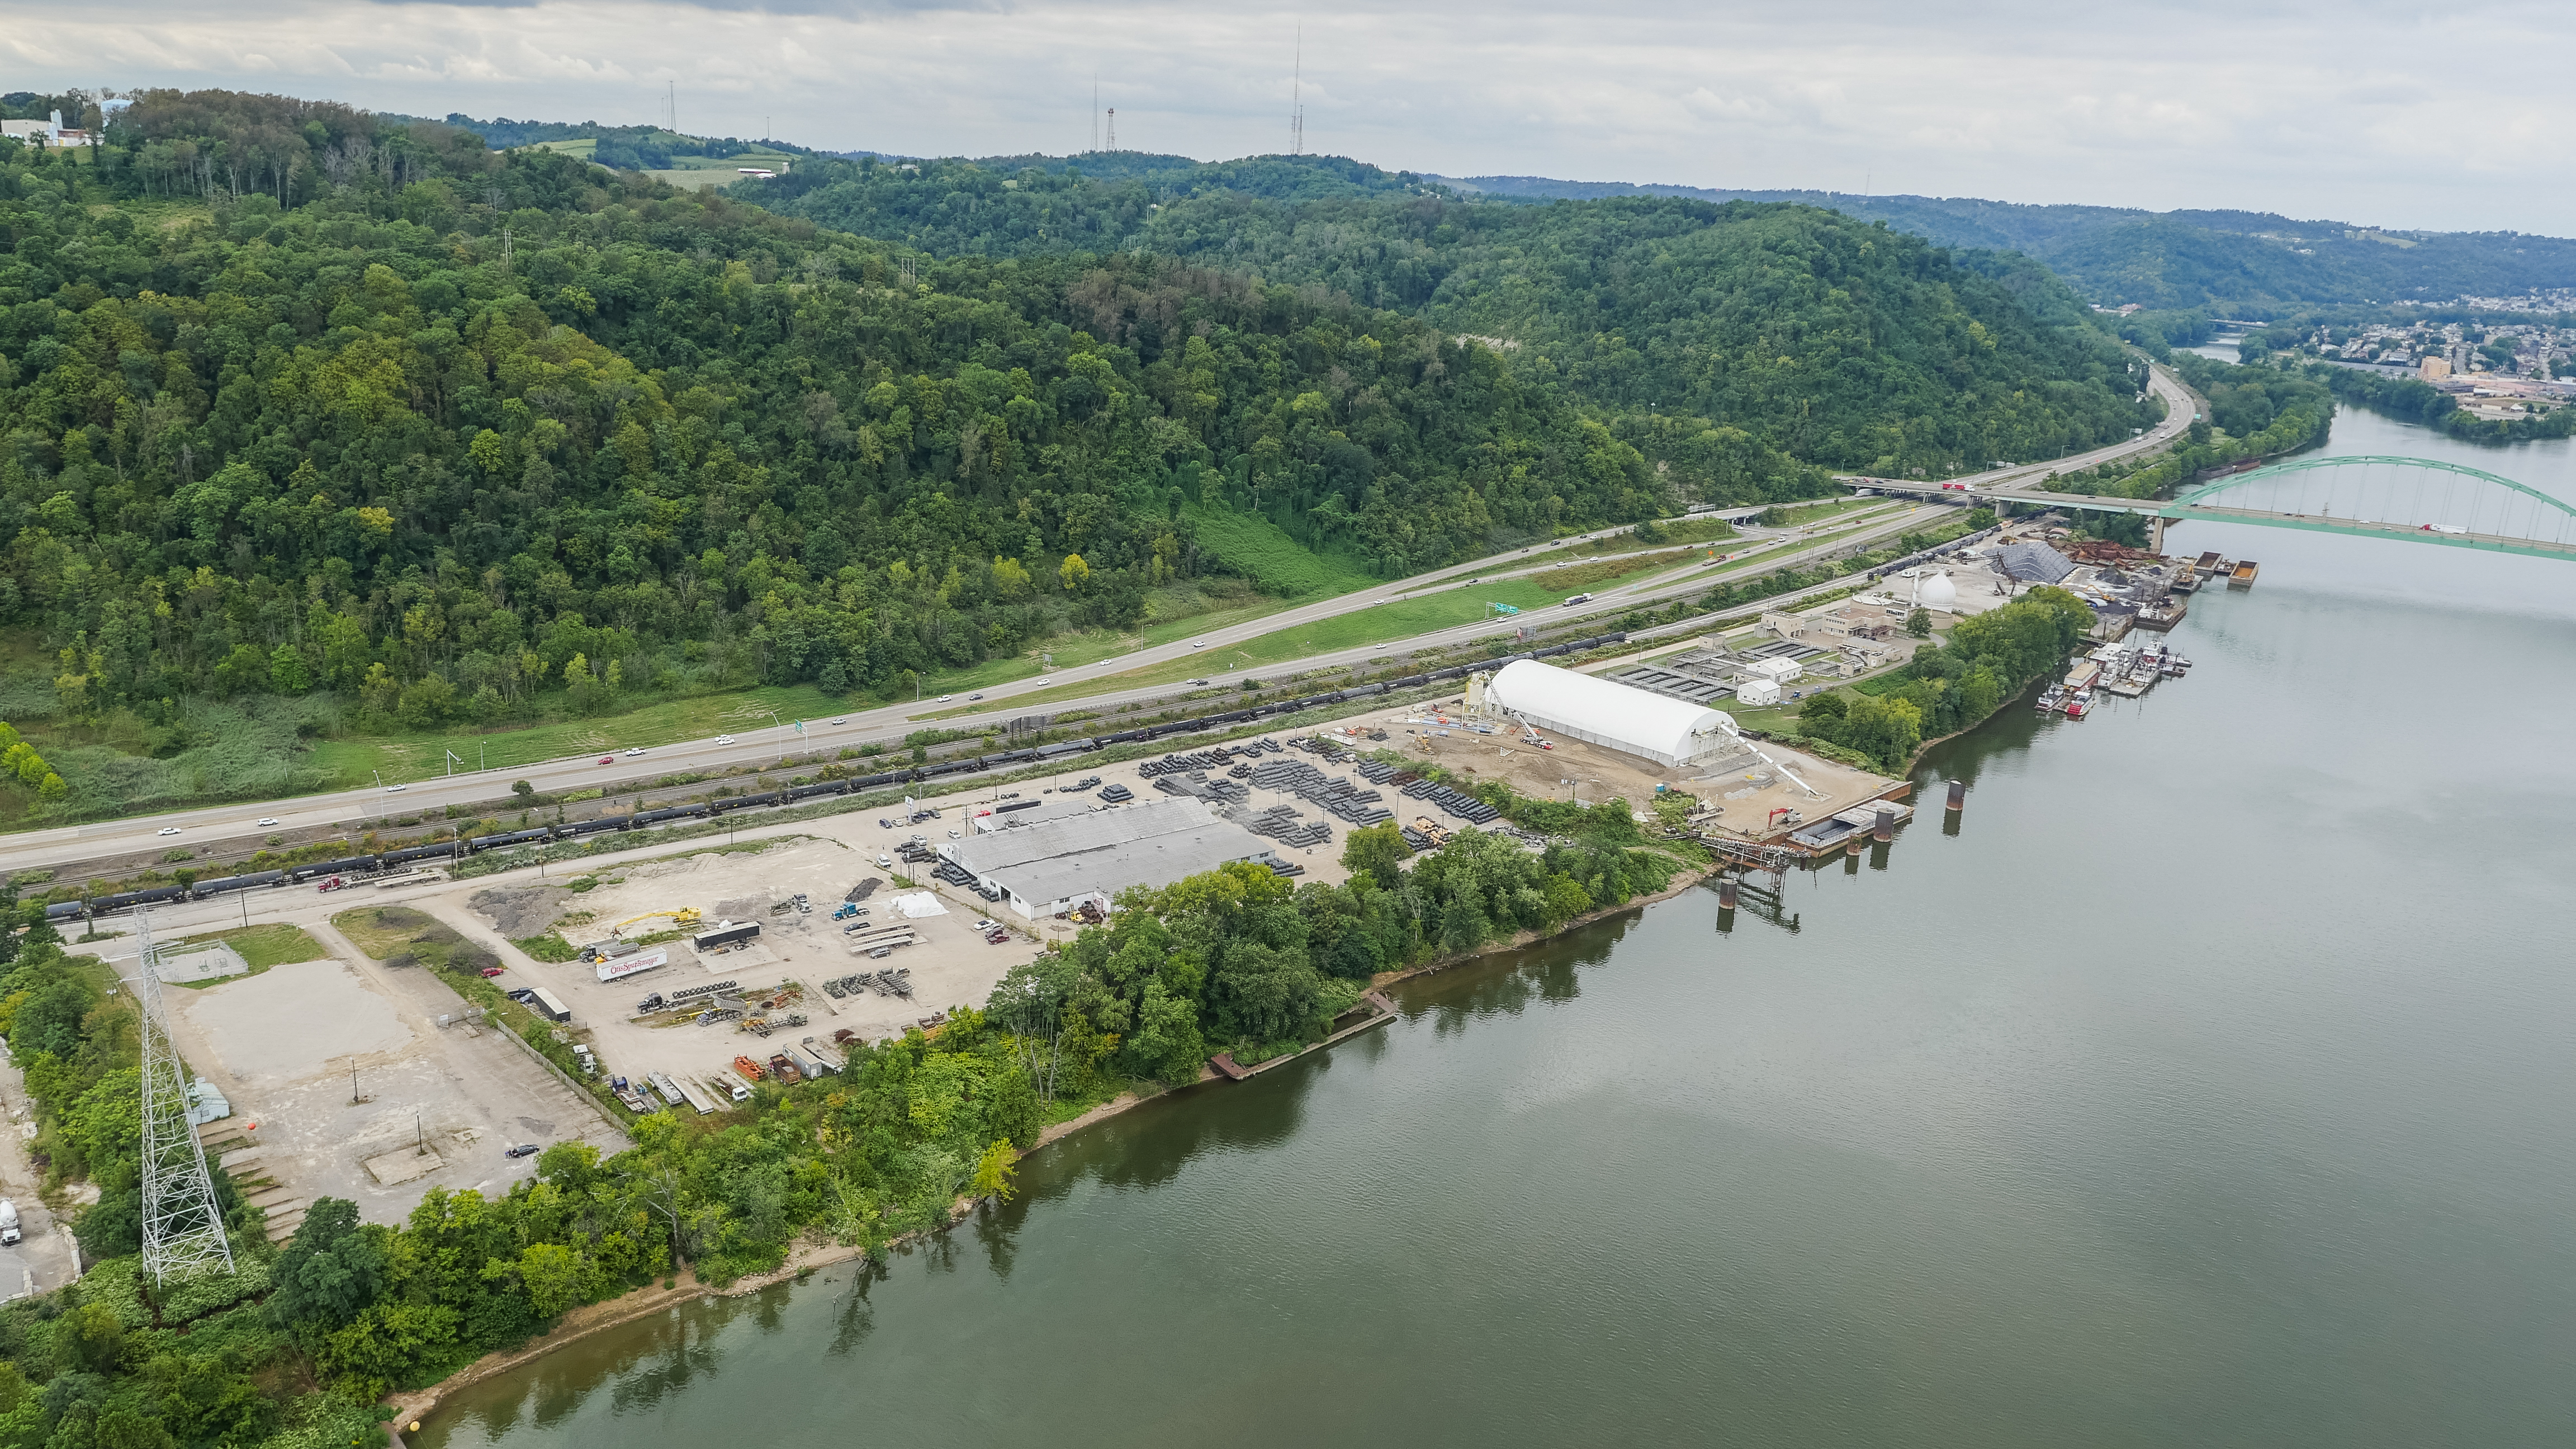 Aerial image of MPR Transloading and Energy Services